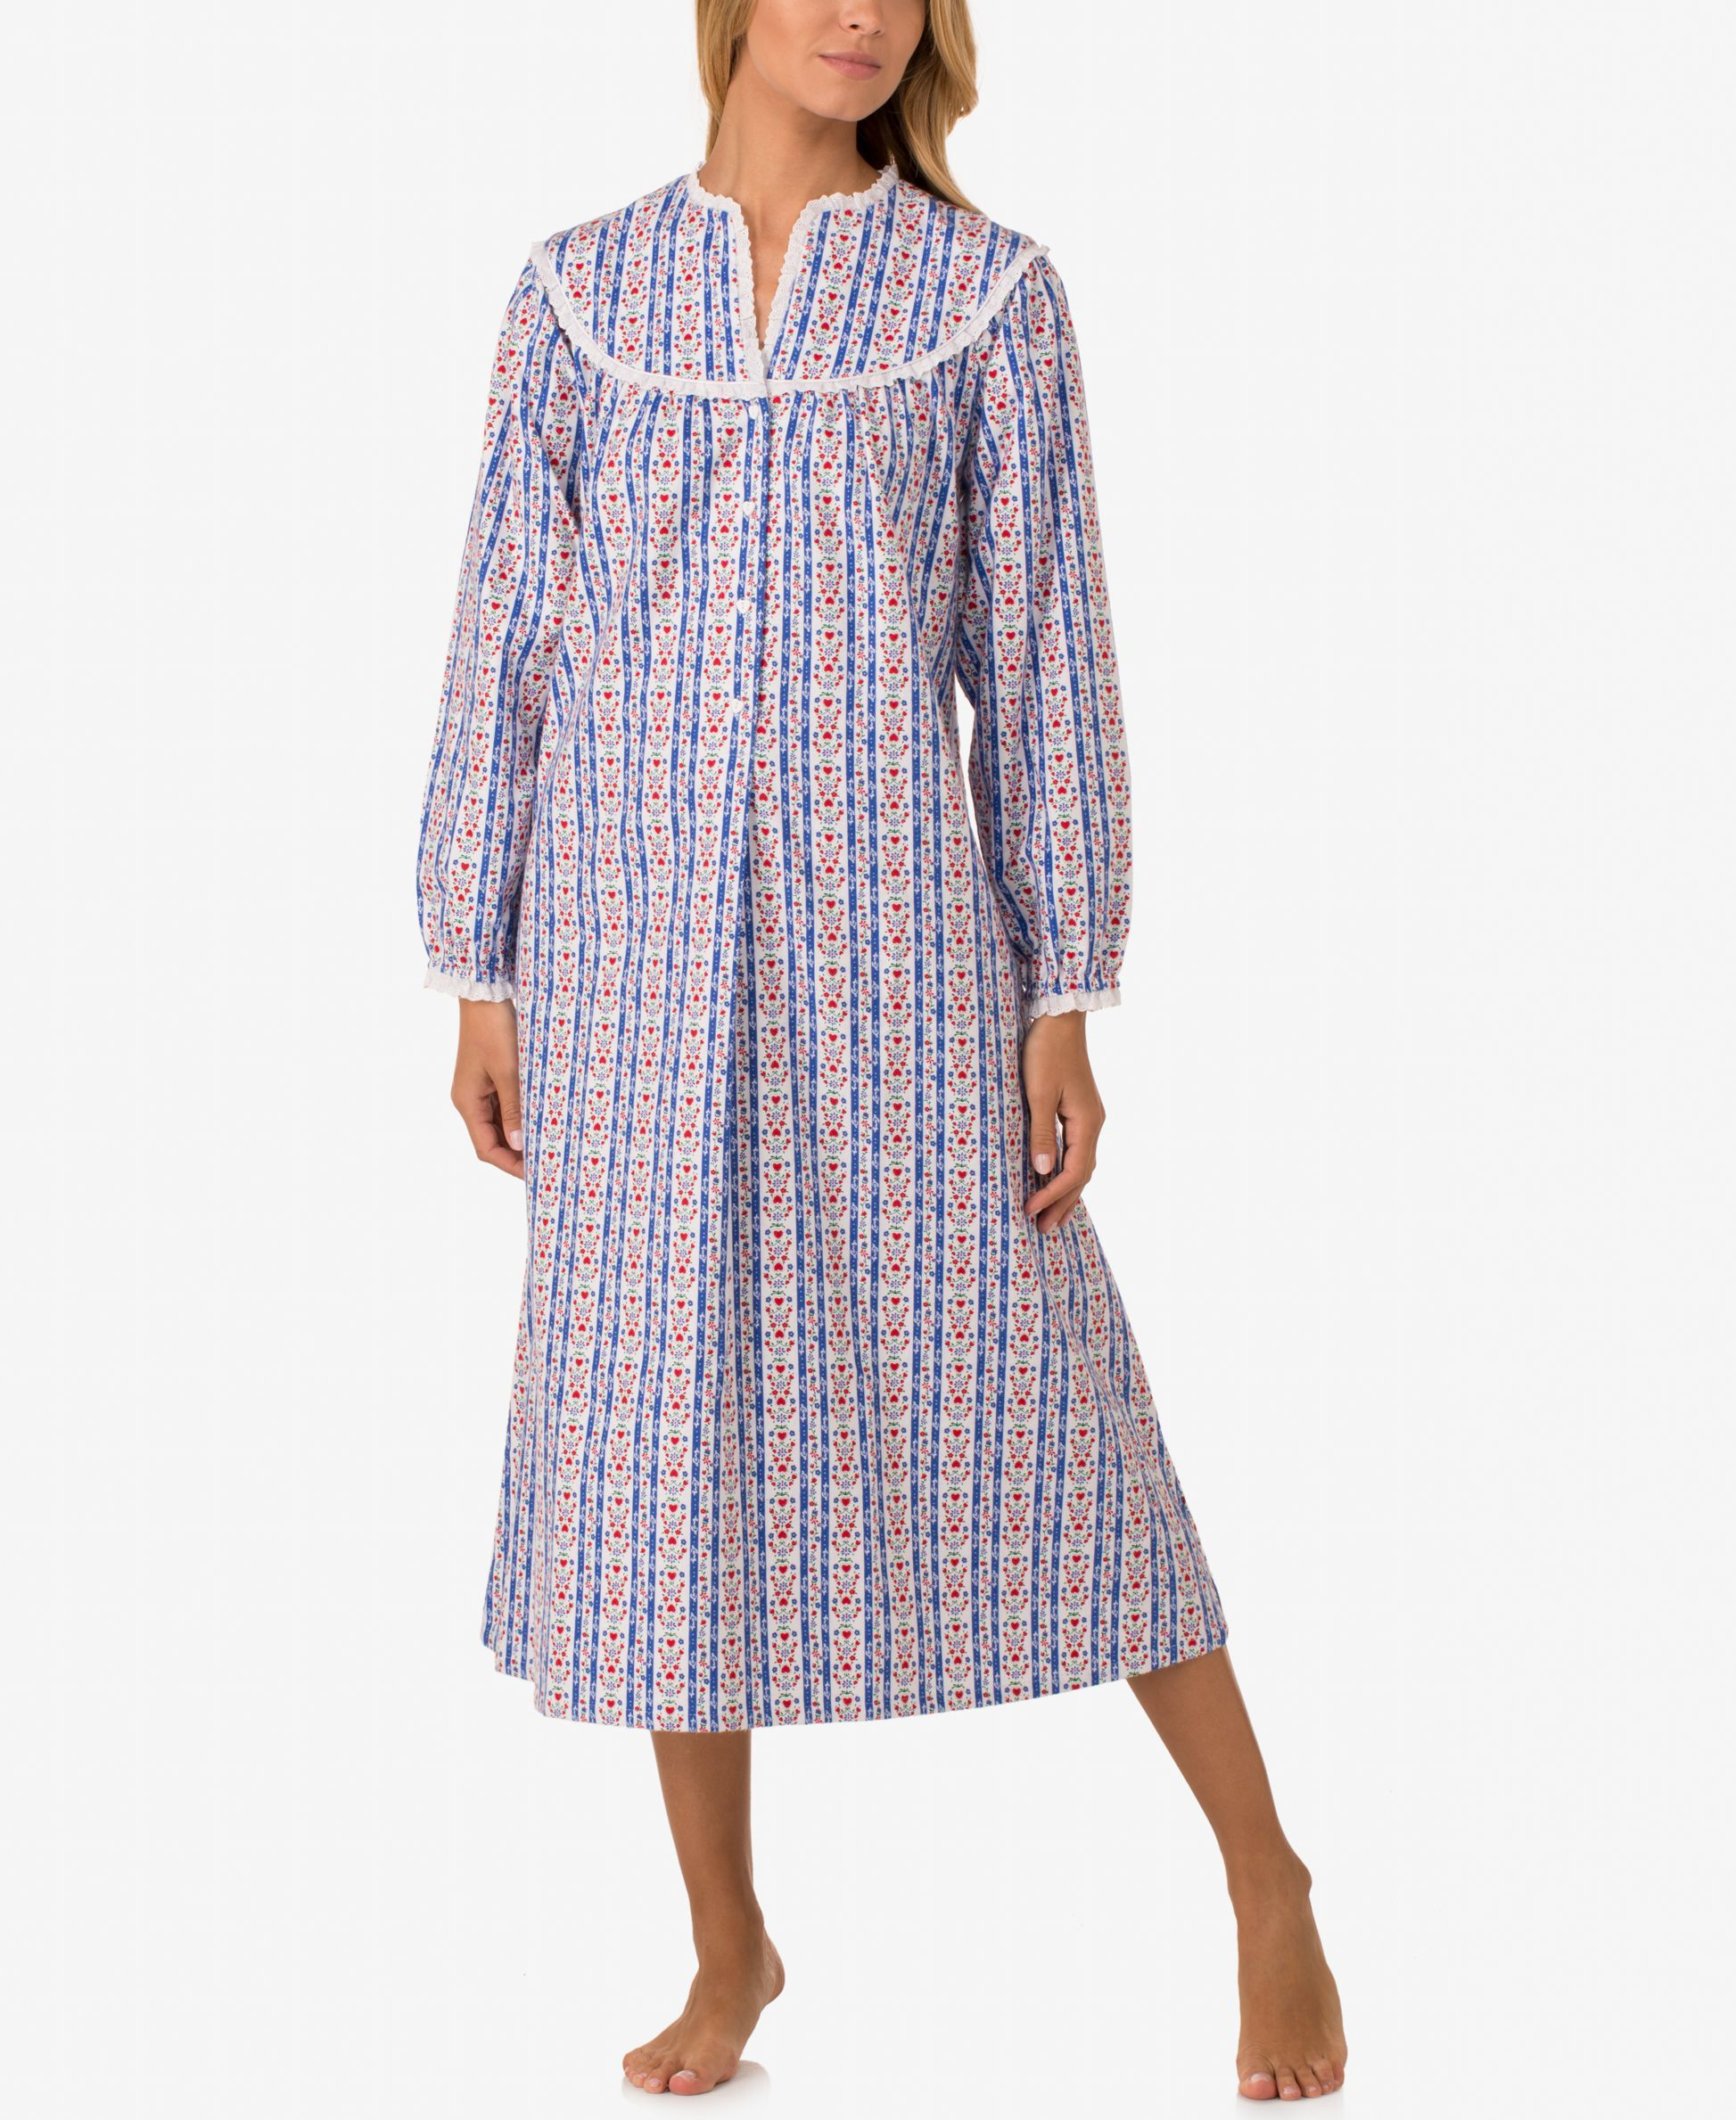 Lanz of Salzburg V-Neck Flannel Nightgown | Lanz of Salzburg ...